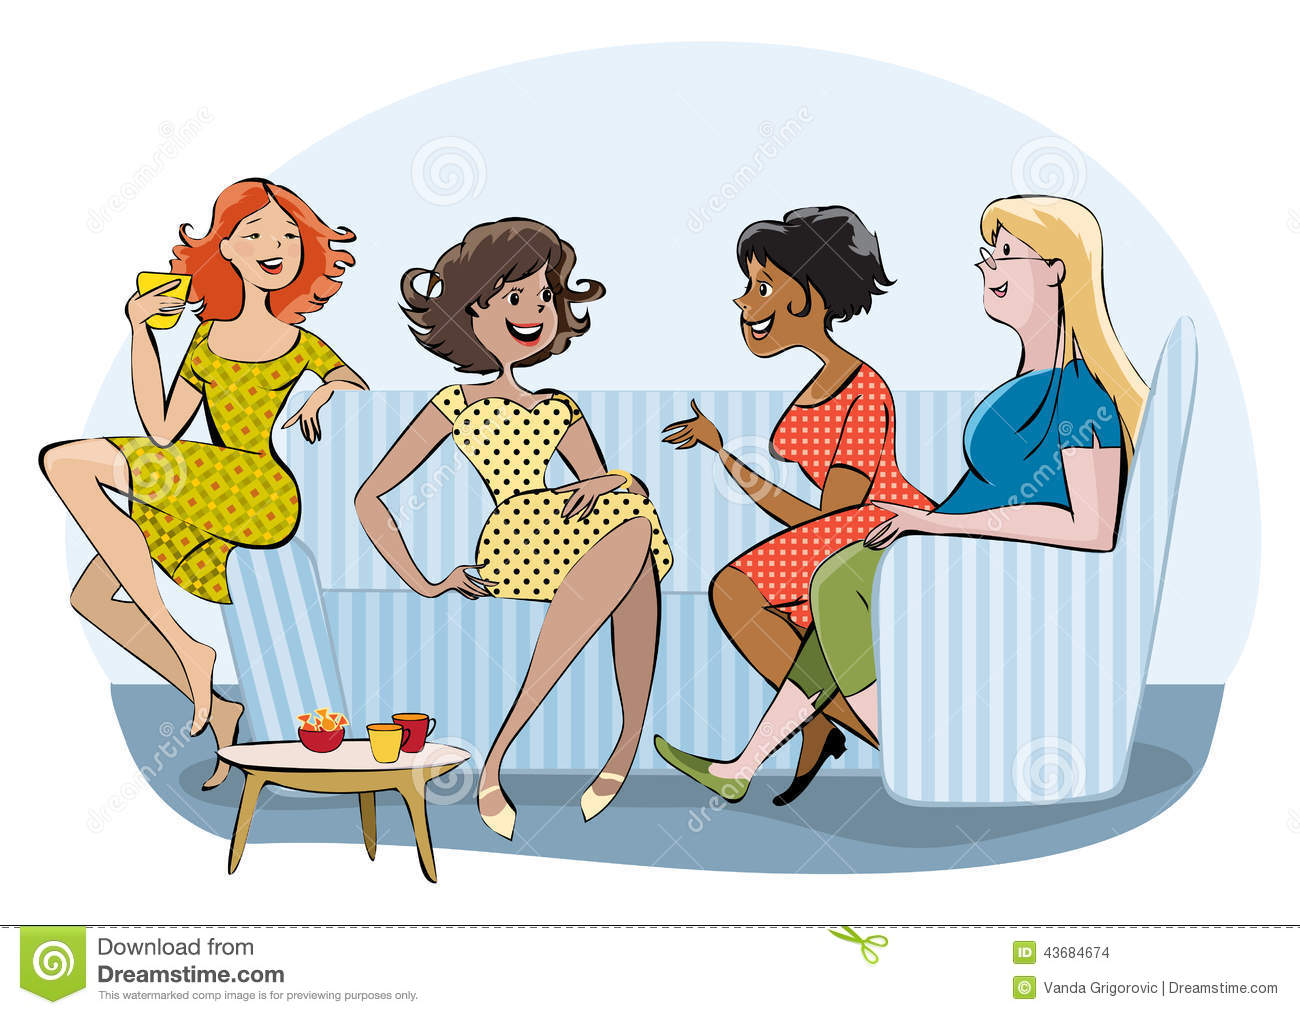 Illustration showing group of ladies chating